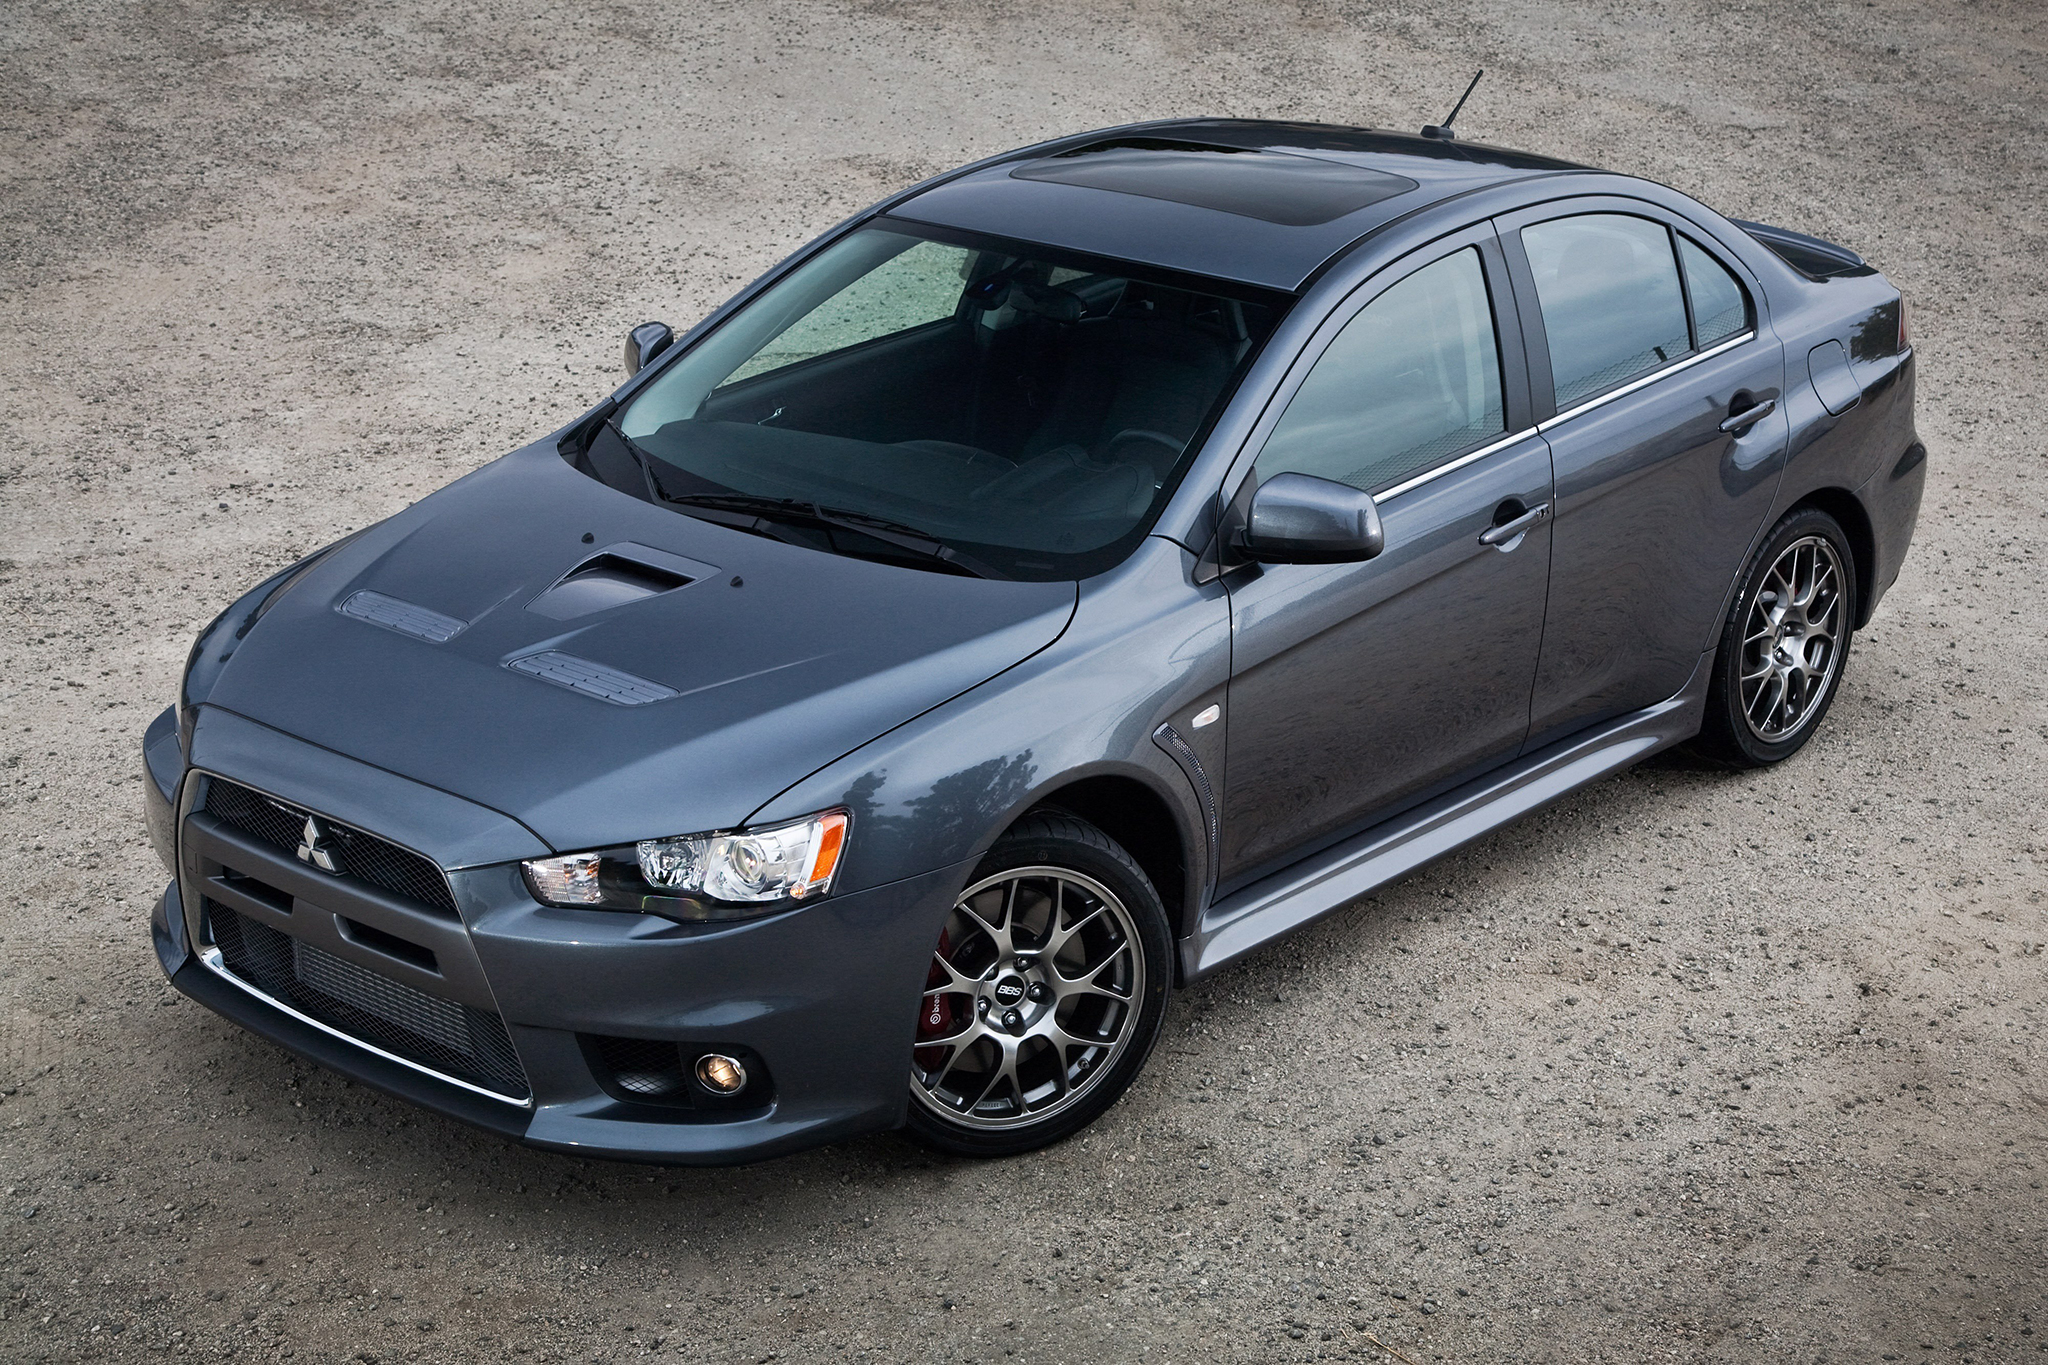 2015 Mitsubishi Lancer Evolution Updated for its Last Year